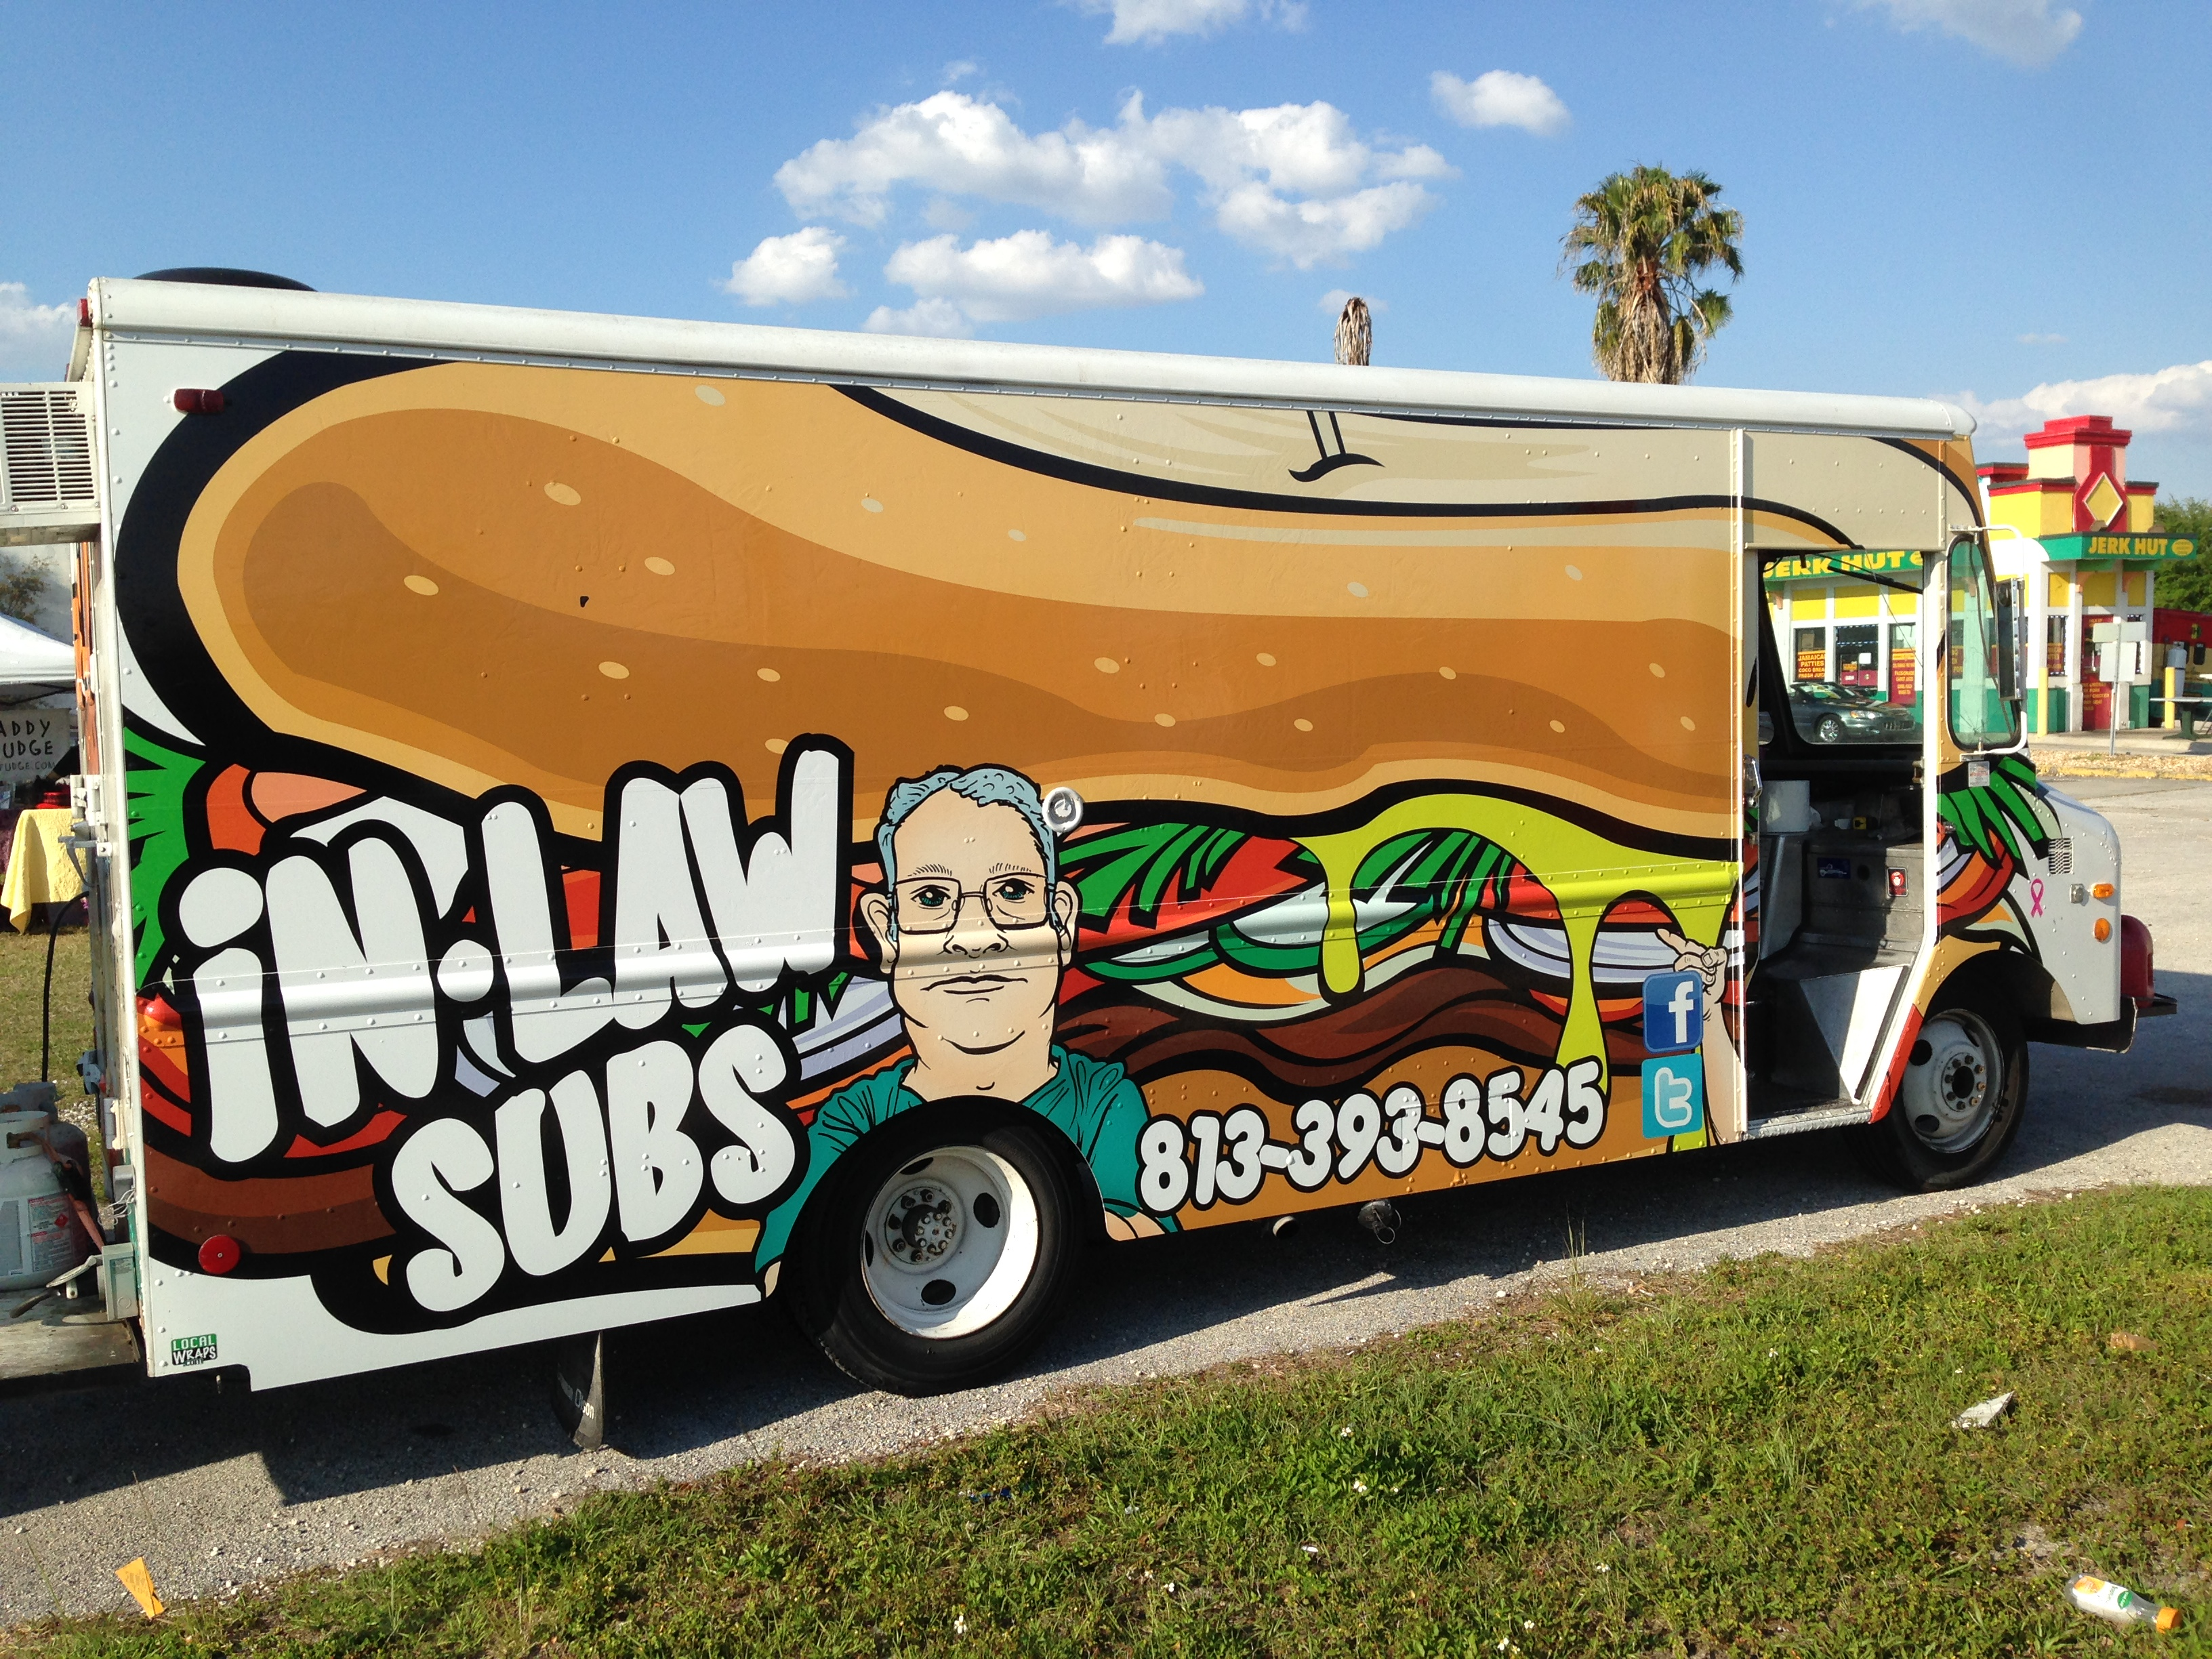 In Law Subs Tampa Bay Food Trucks